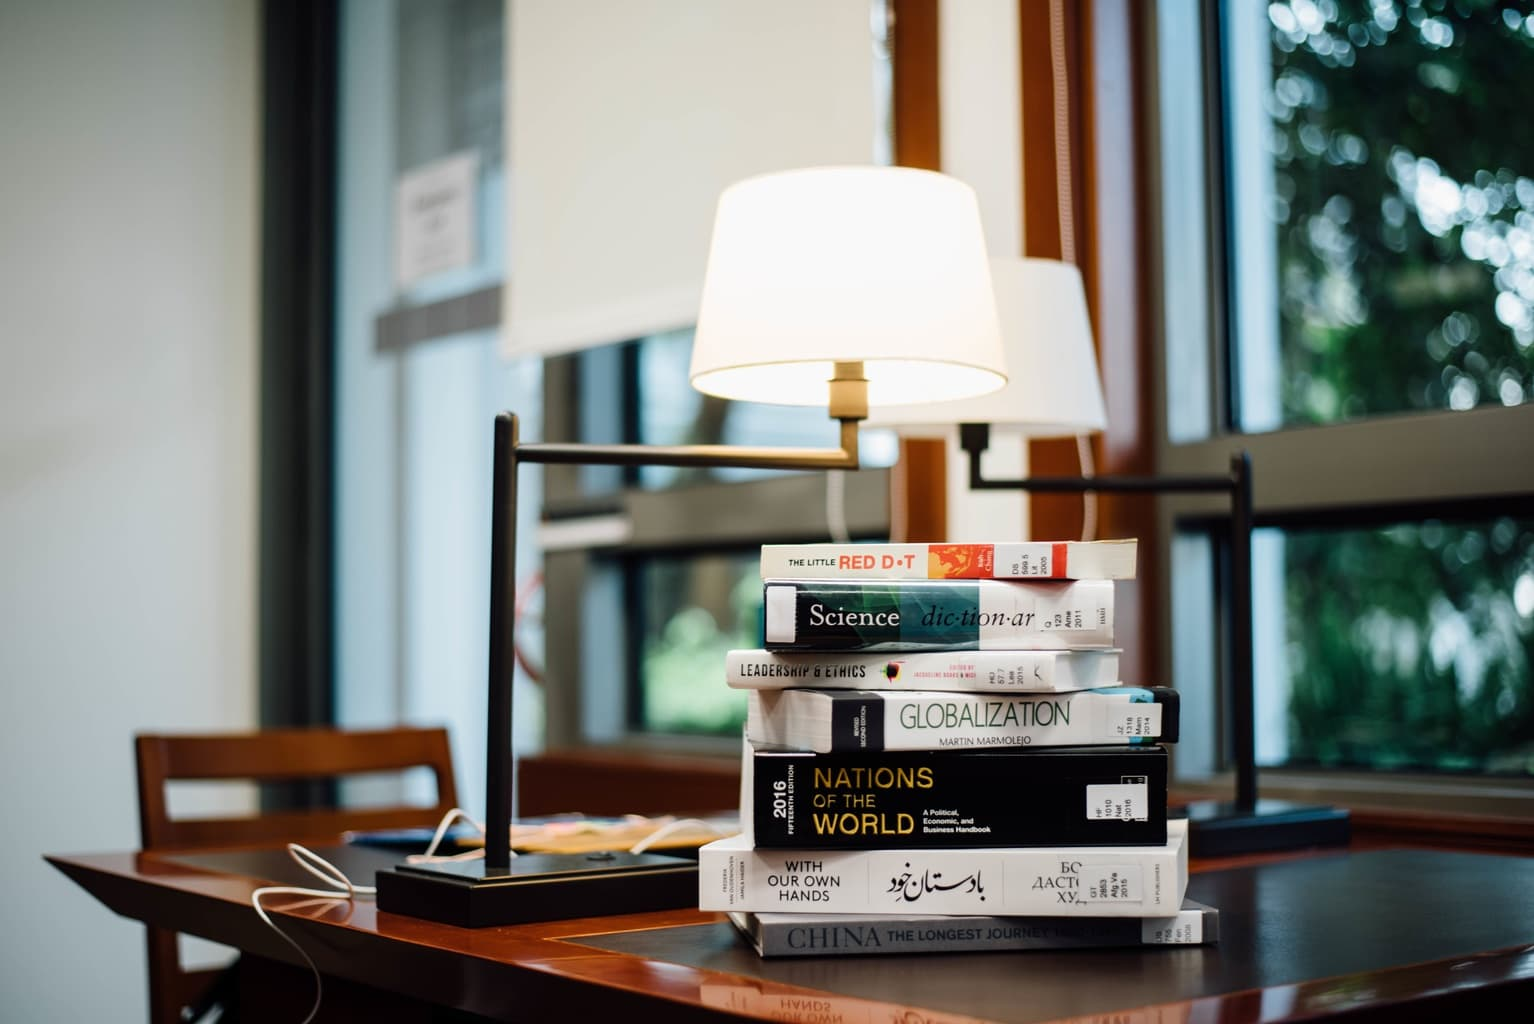 table with stacks of books in a naturally lit studying area